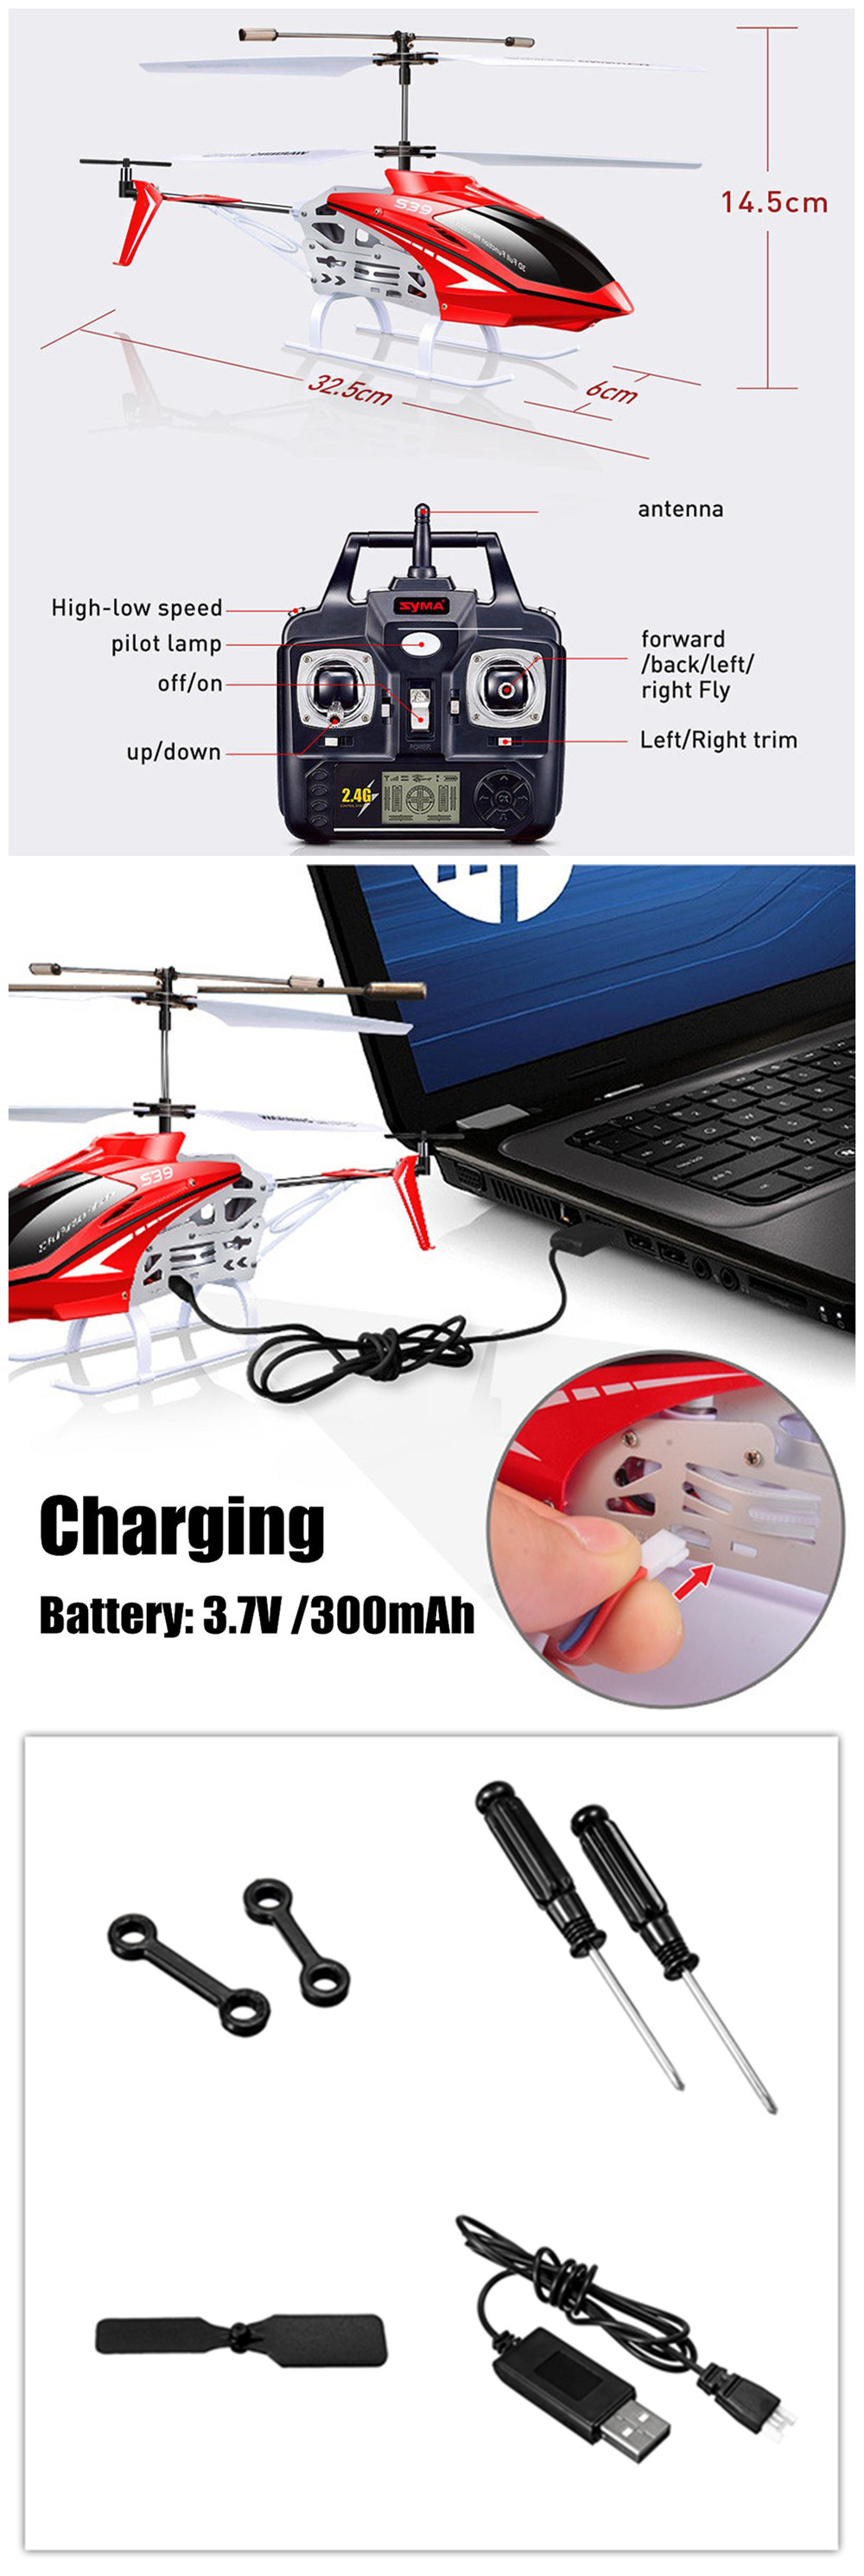 SYMA S39 2.4G 3CH Remote Control Mini RC Helicopter With Controller RTF Kids Toy